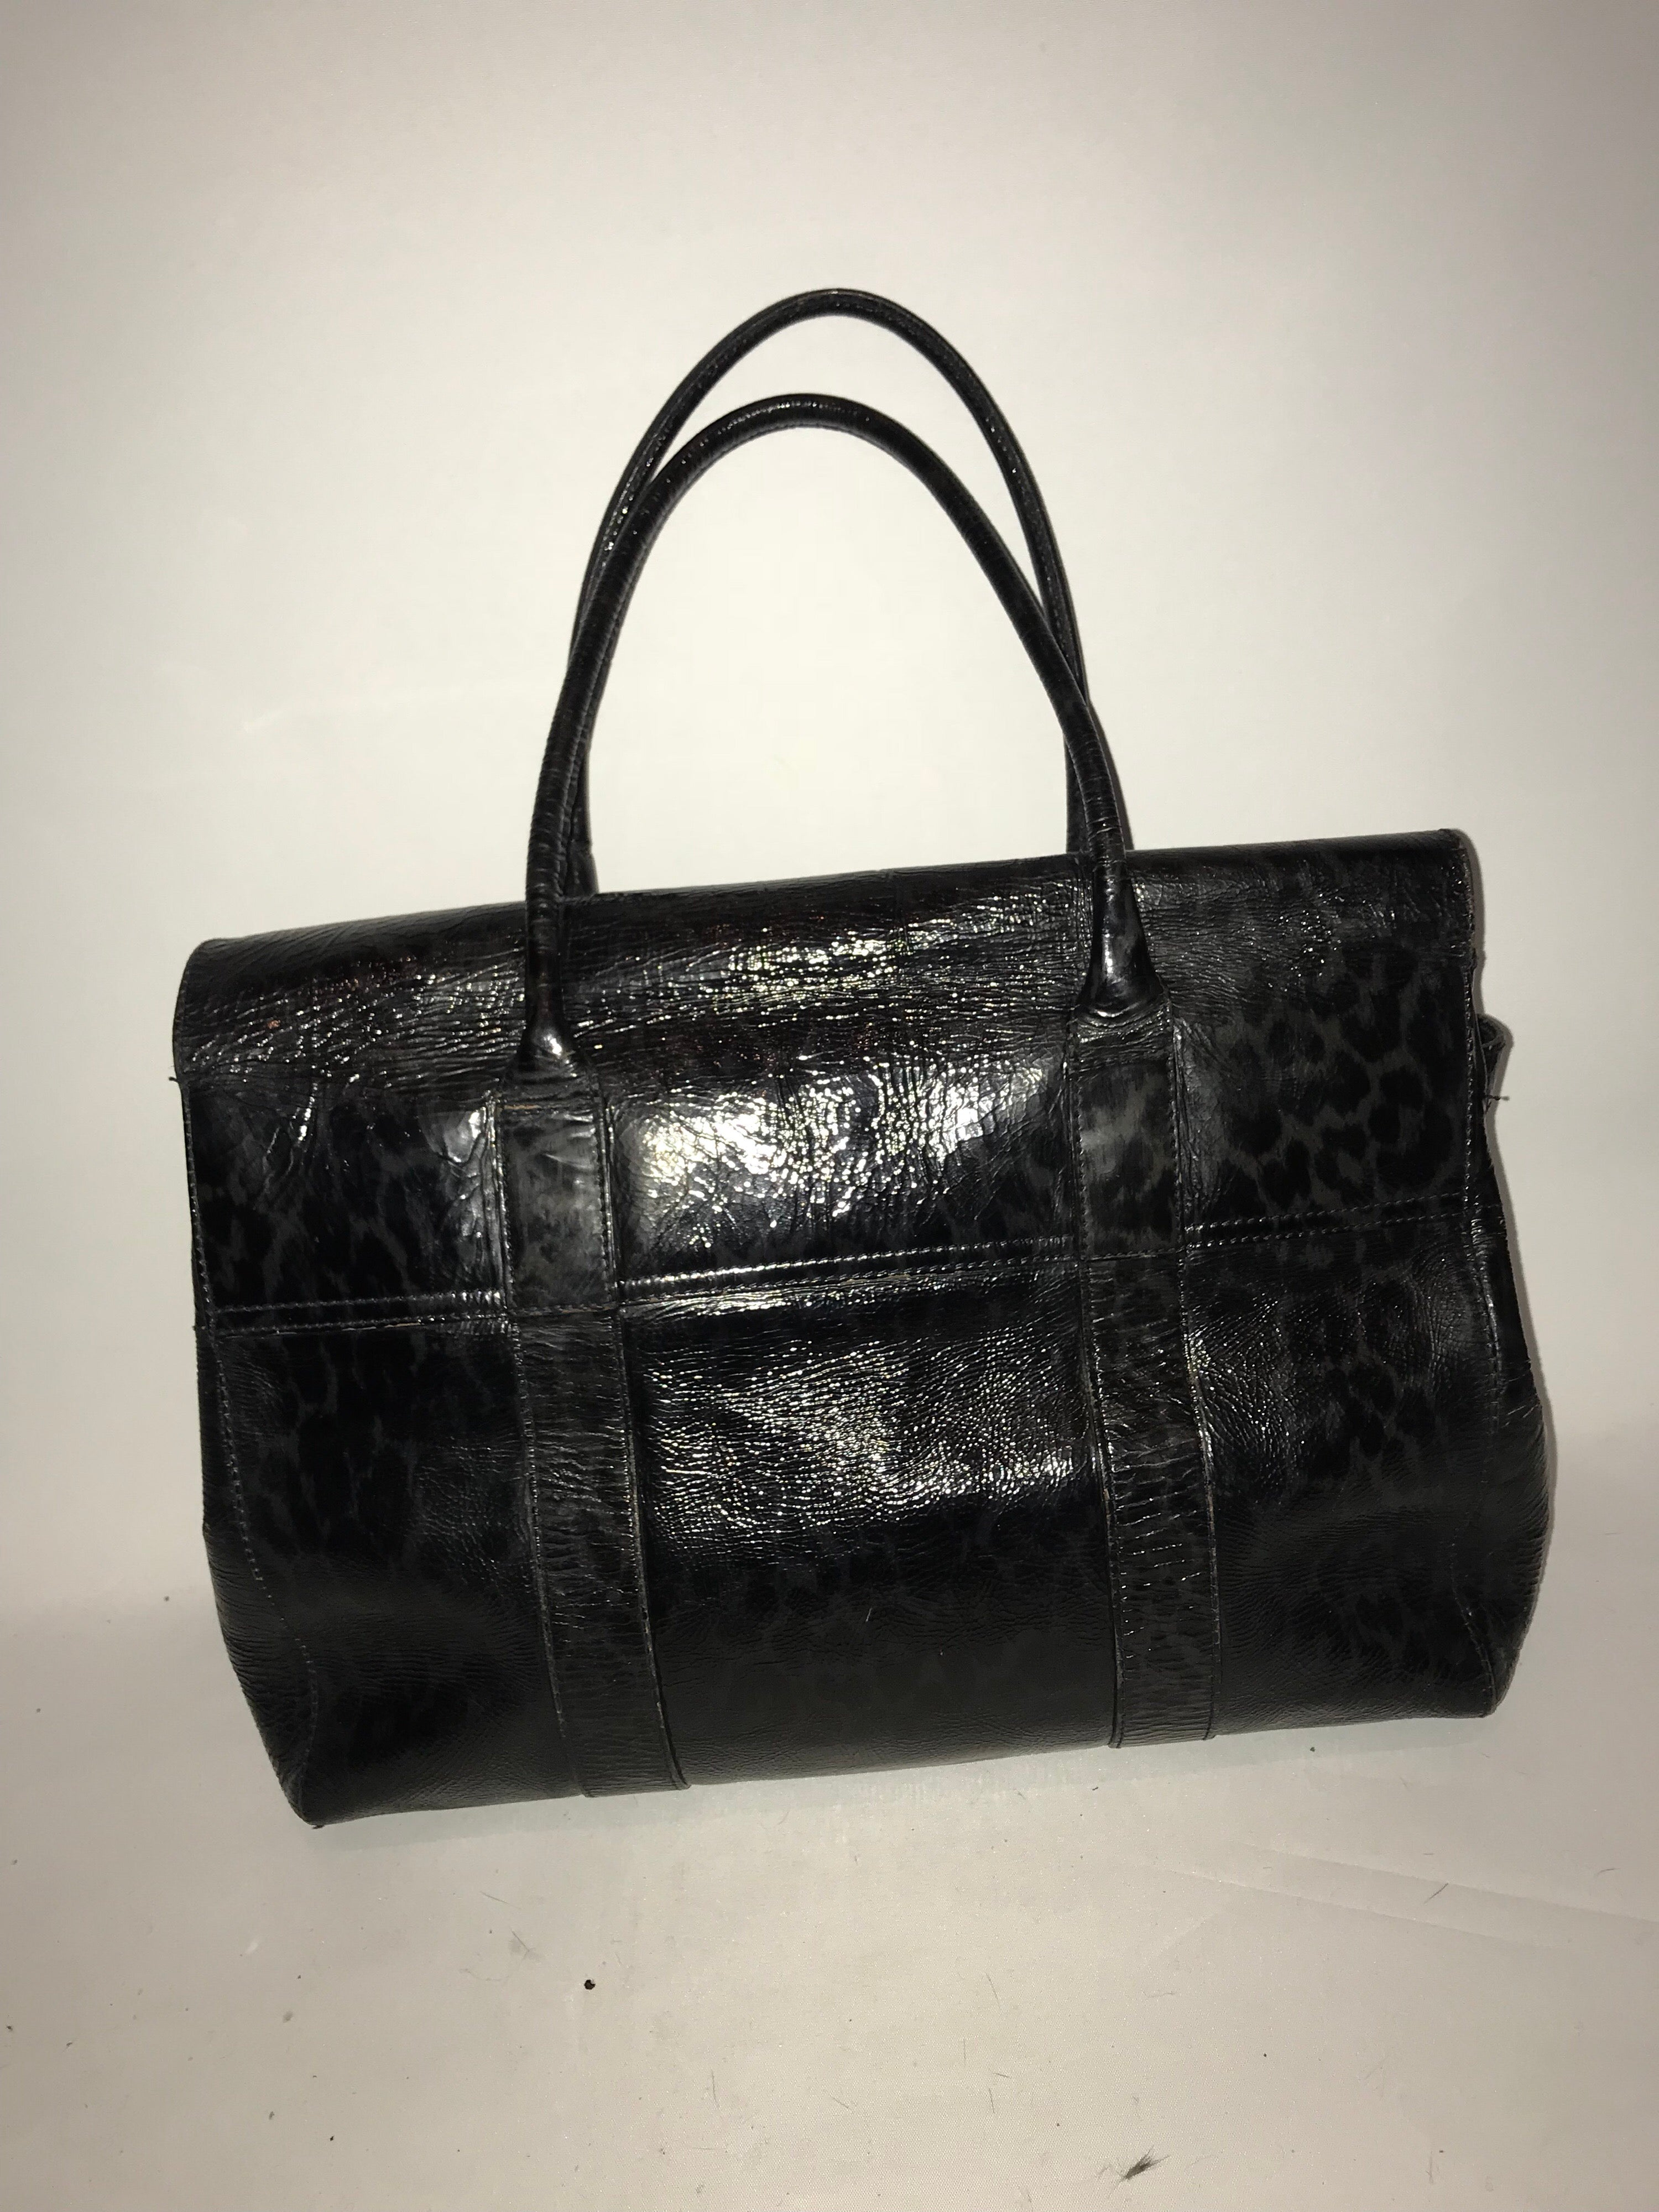 A Mulberry bayswater satchel bag in leopard print patent leather tote blue  black at 1stdibs 186bf0964c16d